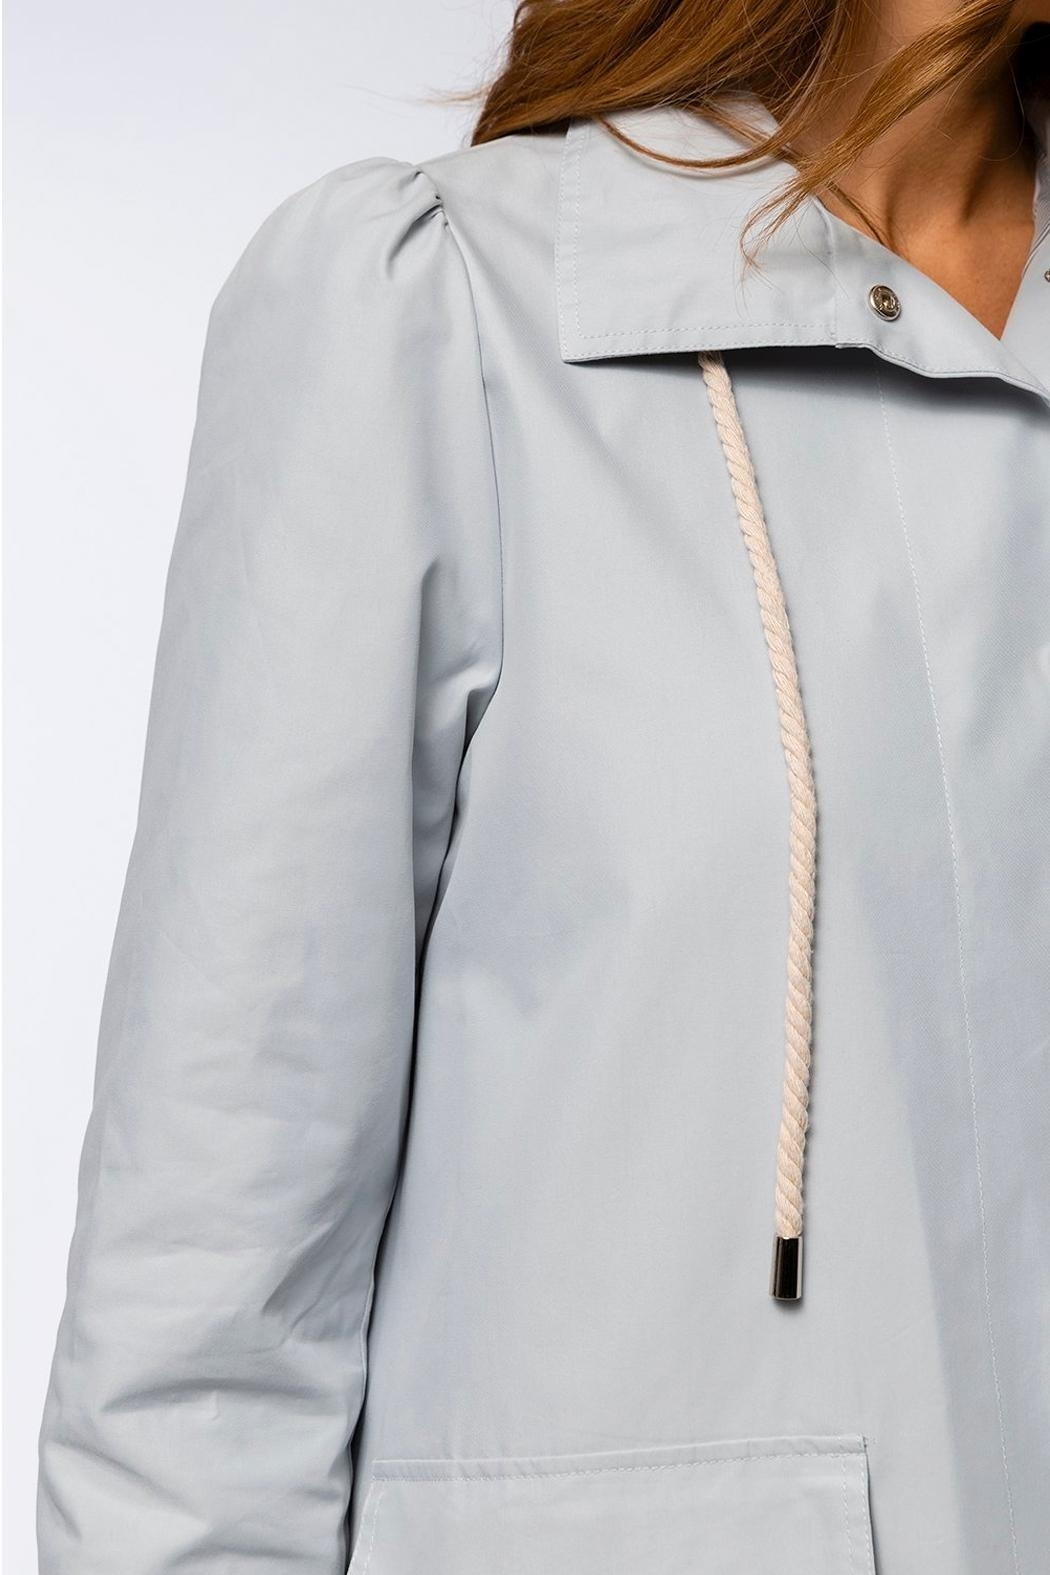 Tyler Boe Tasha Water Repellent Trench Coat - Side Cropped Image